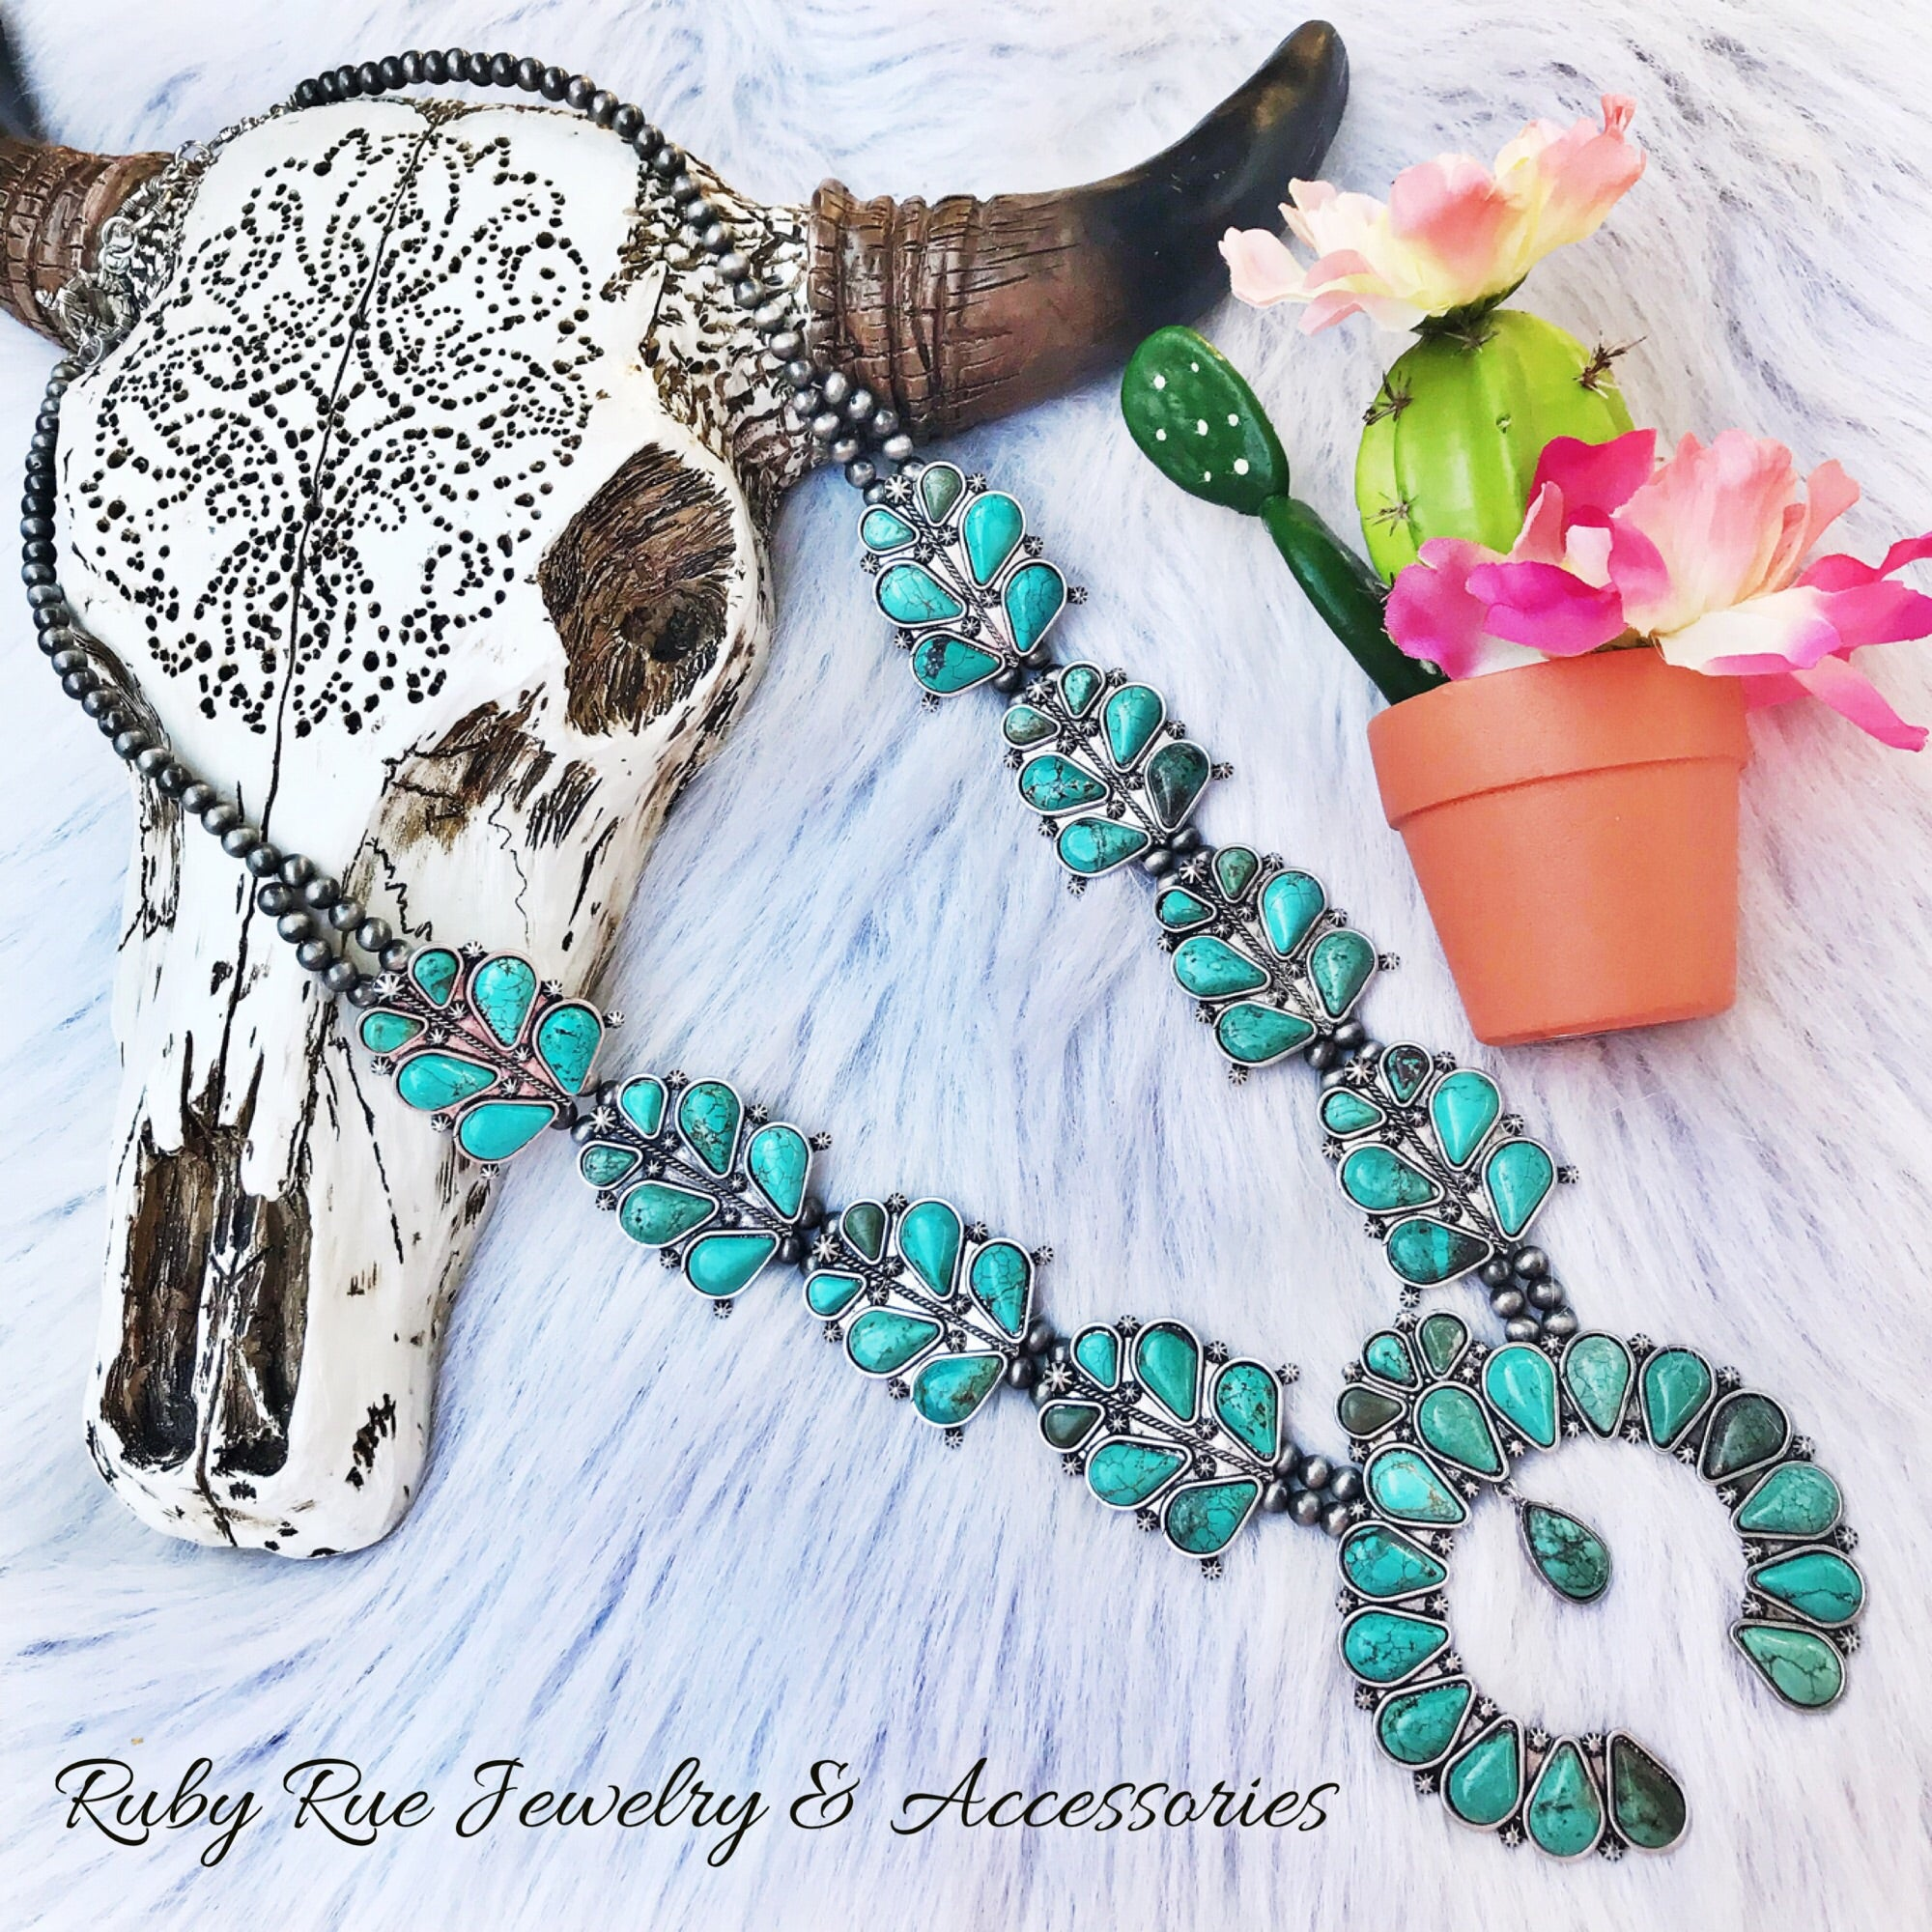 The Hope Turquoise Squash - Ruby Rue Jewelry & Accessories